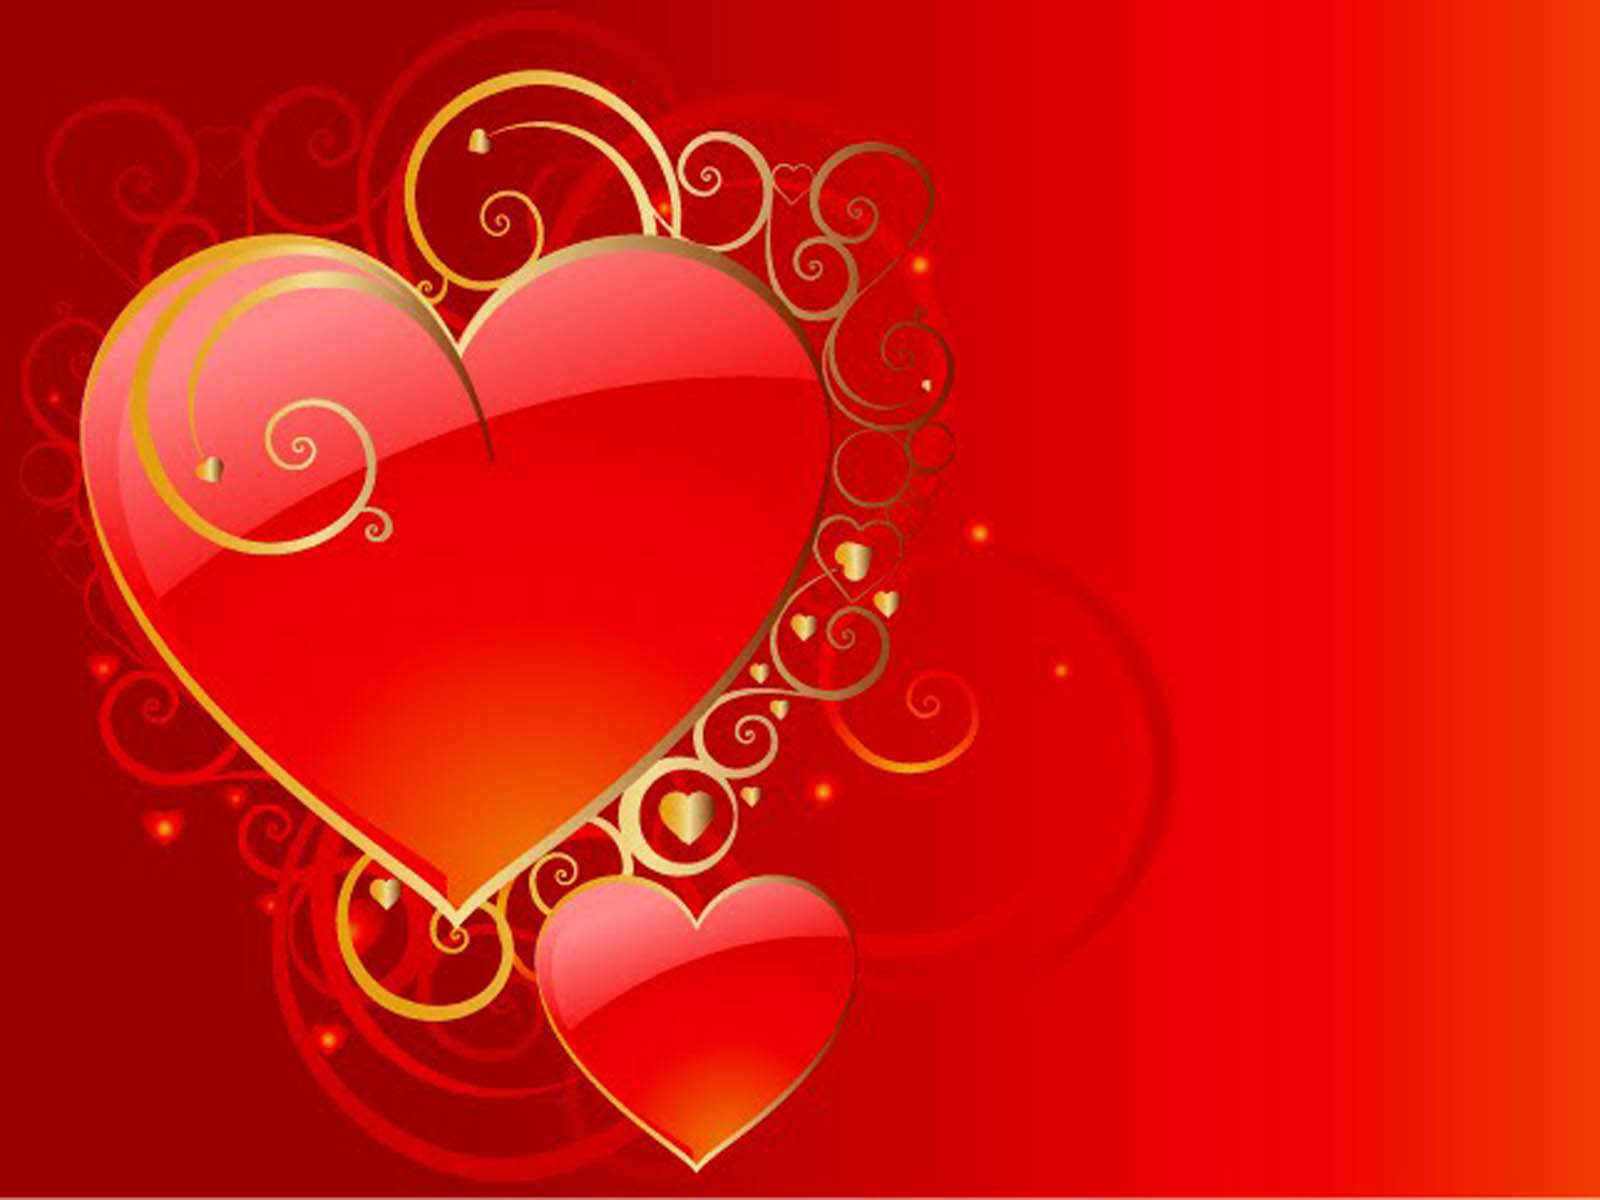 wallpaper: Love Heart Wallpapers